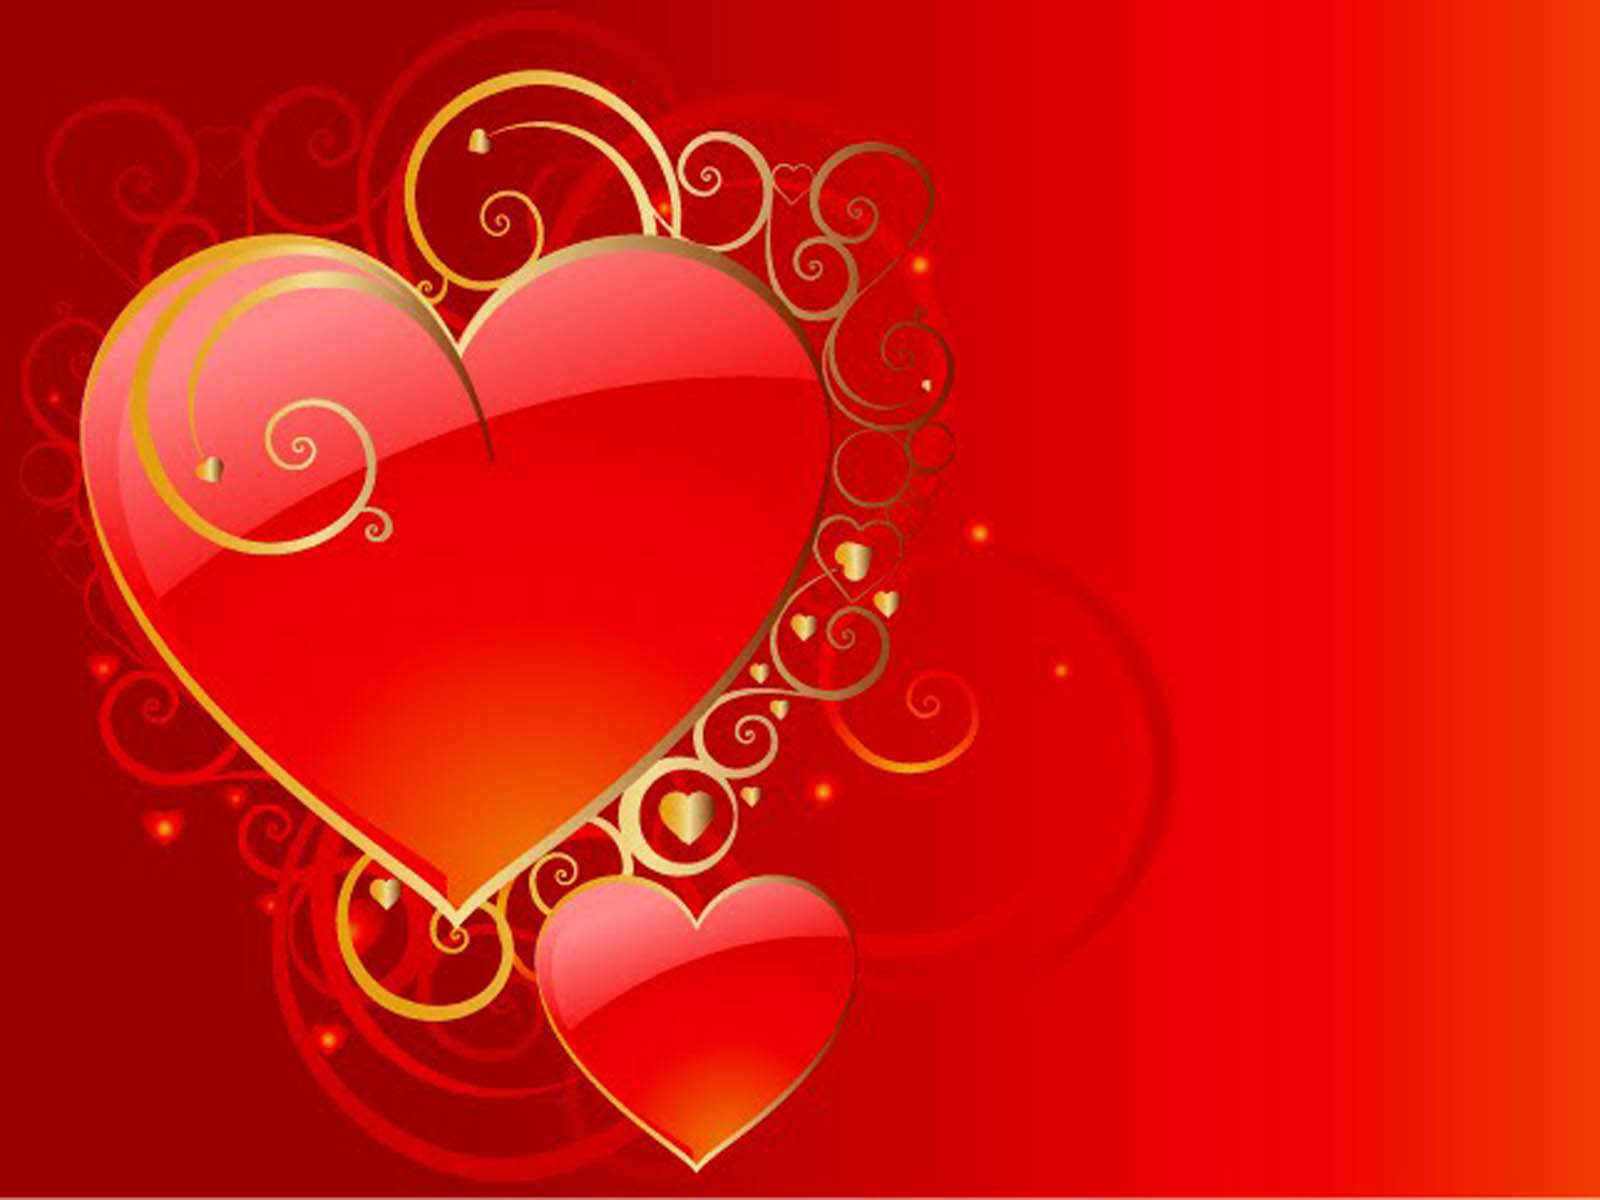 wallpaper: Love Heart Wallpapers